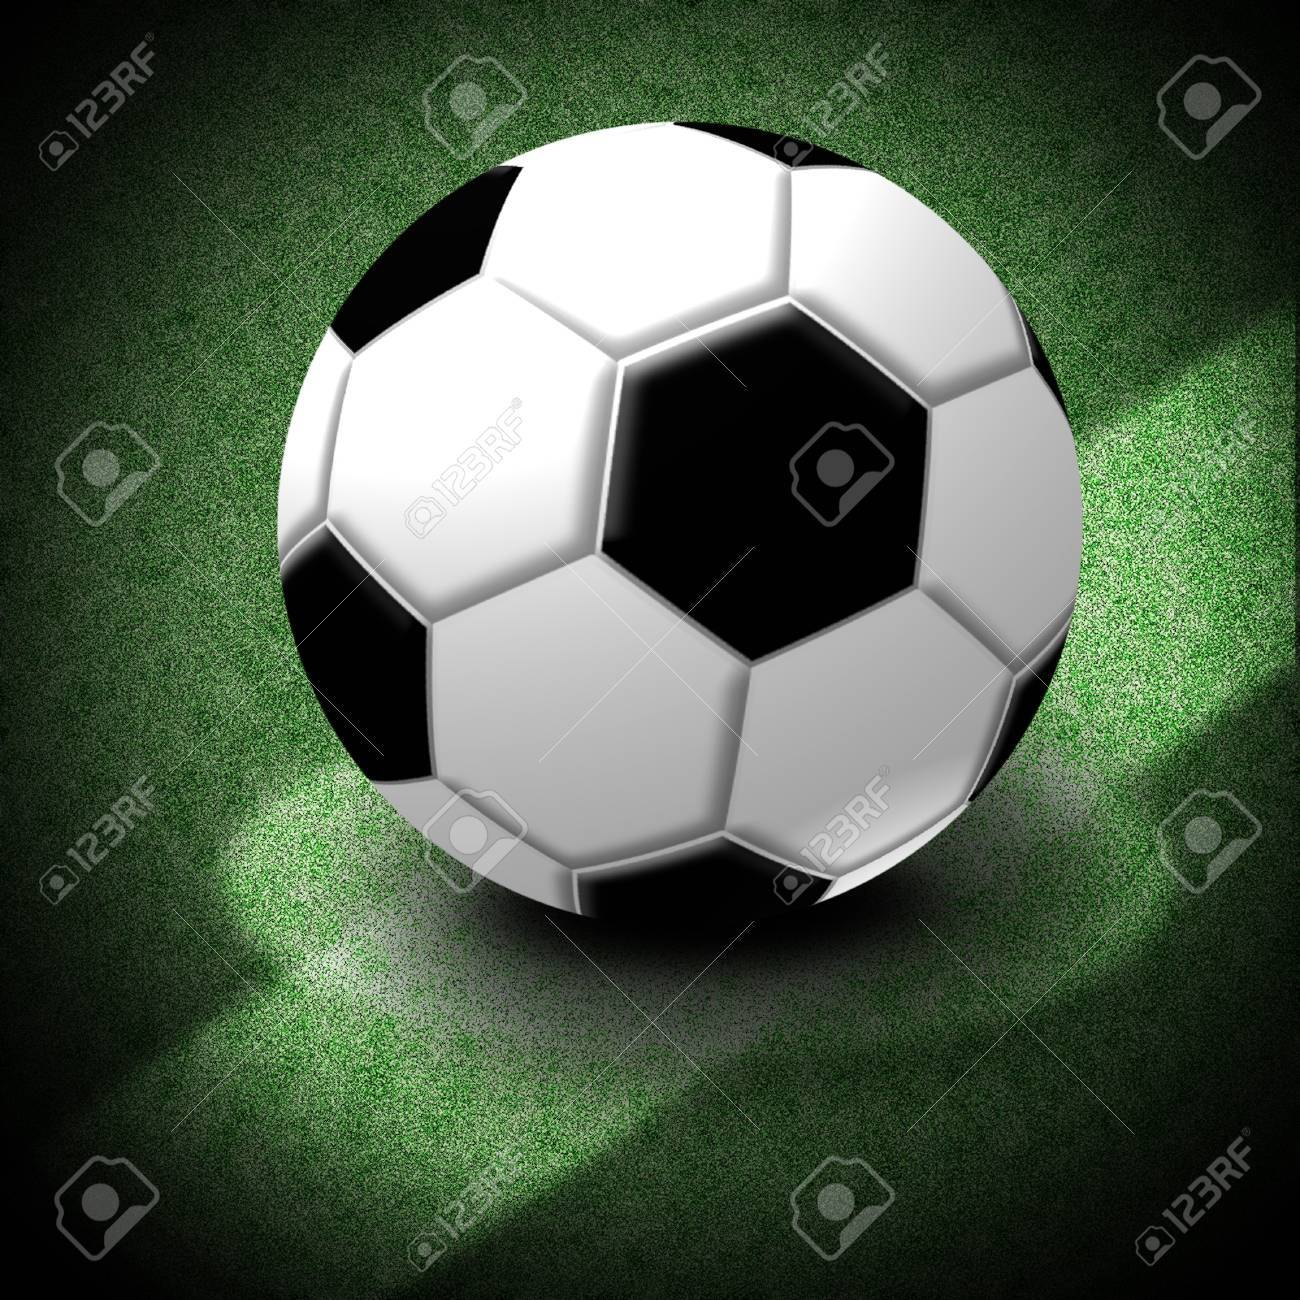 Soccer Ball, Illustration of a soccer ball lying on the center of the game field  with Clipping paths Stock Illustration - 21435302